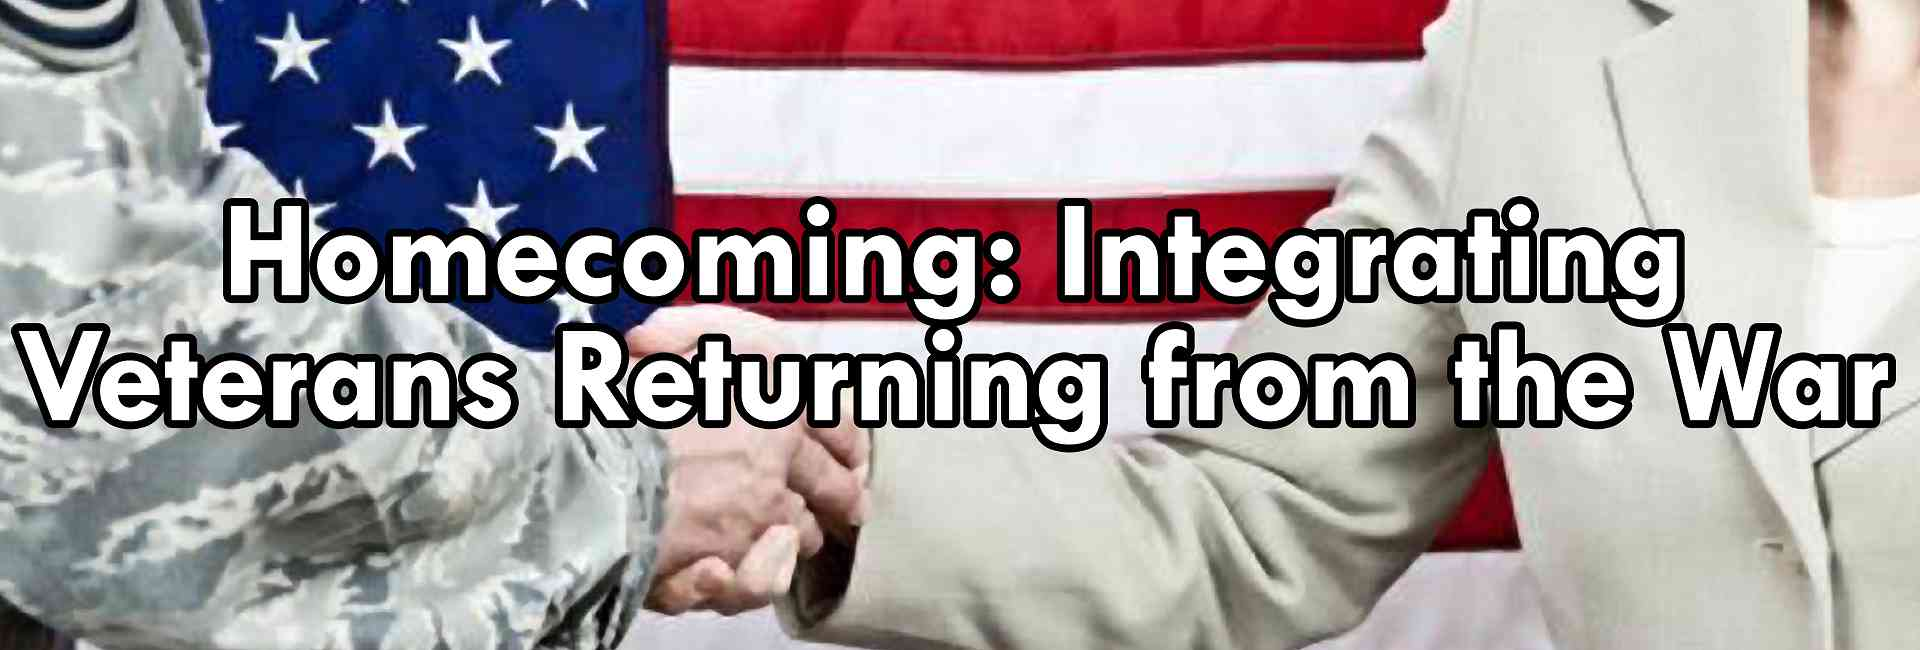 Homecoming Integrating Veterans Returning from the War